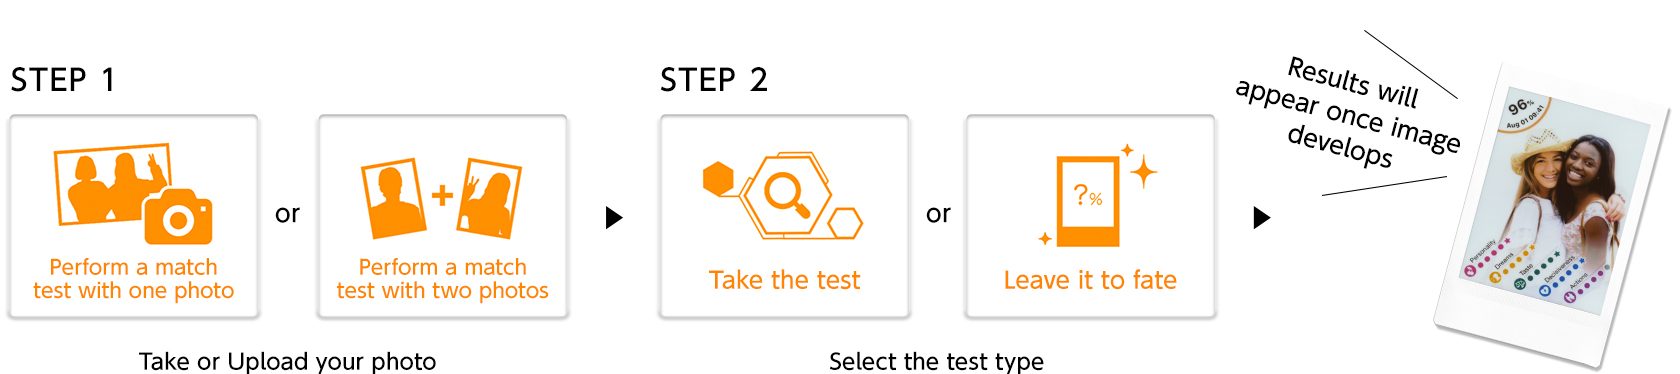 [image] Perform Match Test with one or two photos, select test type, and results will appear when image develops